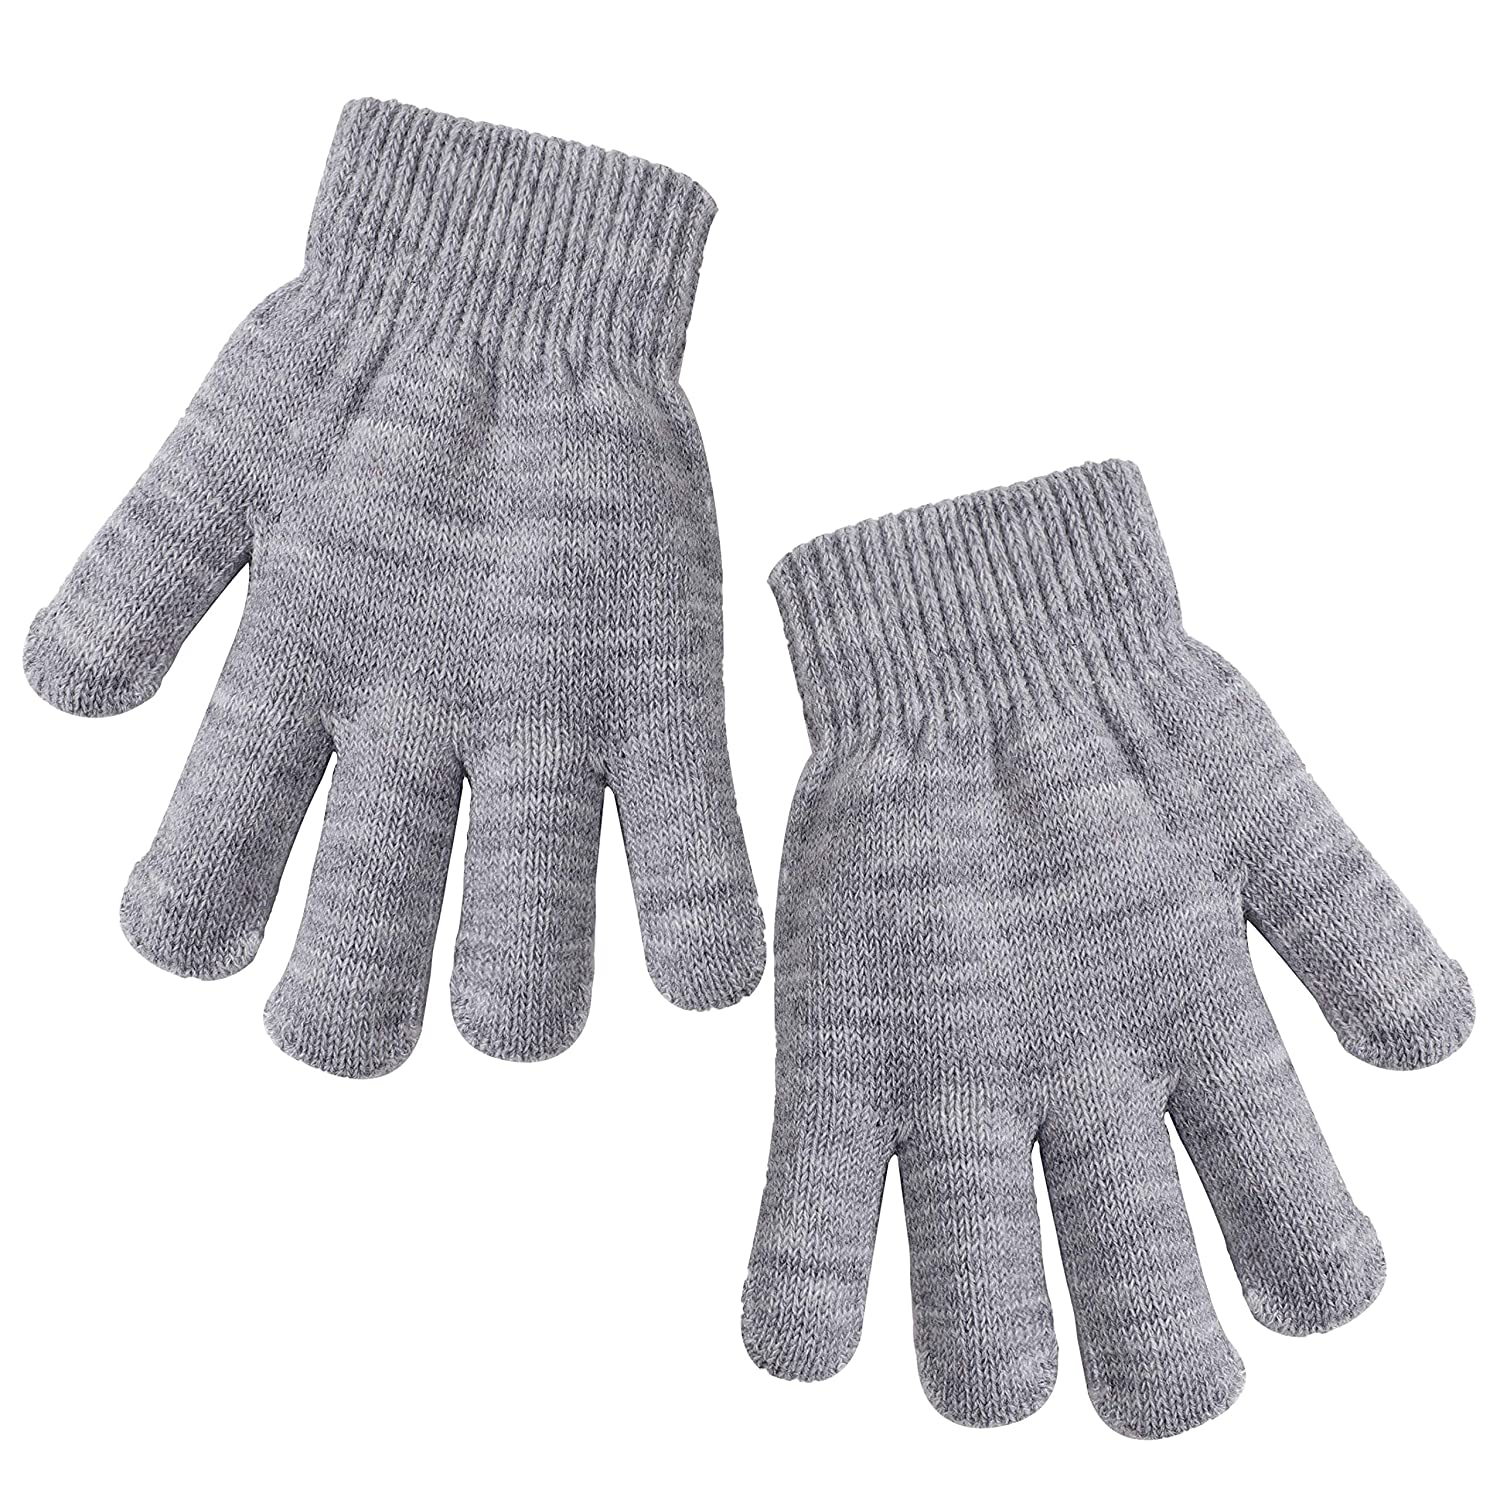 Cooraby Kids Gloves Thick Winter Knitted Gloves Stretchy Full Fingers Gloves Mitten for Boys and Girls